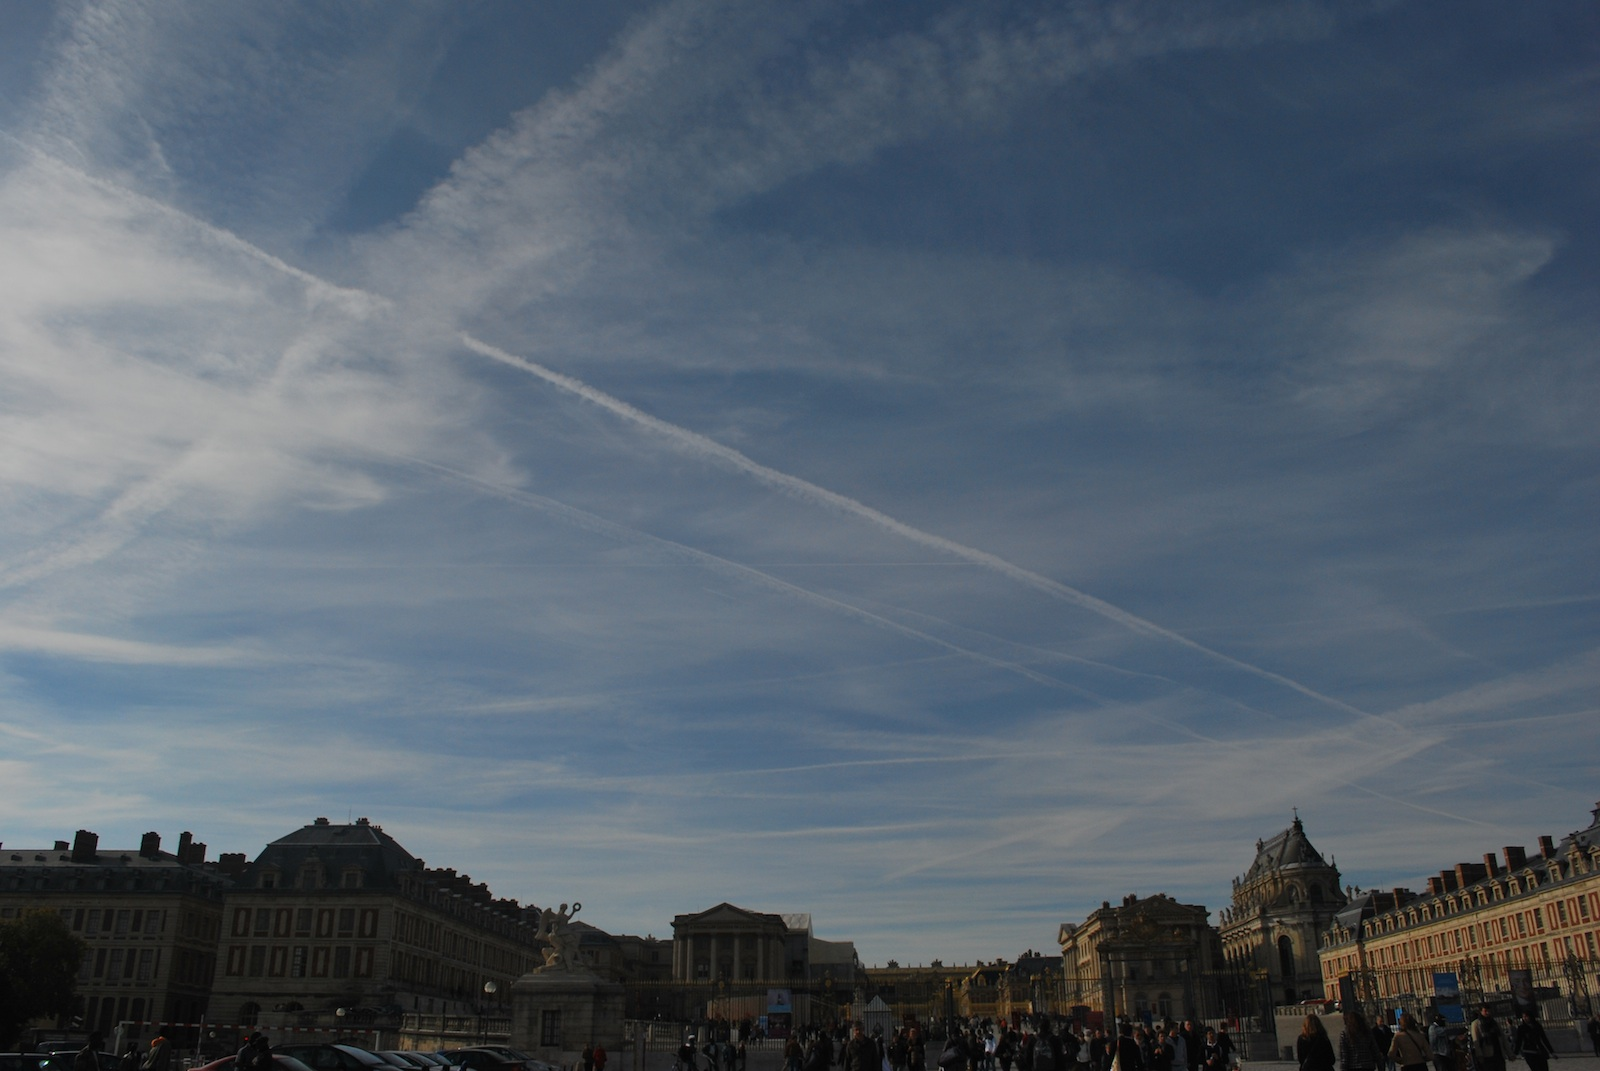 Over Palace of Versailles